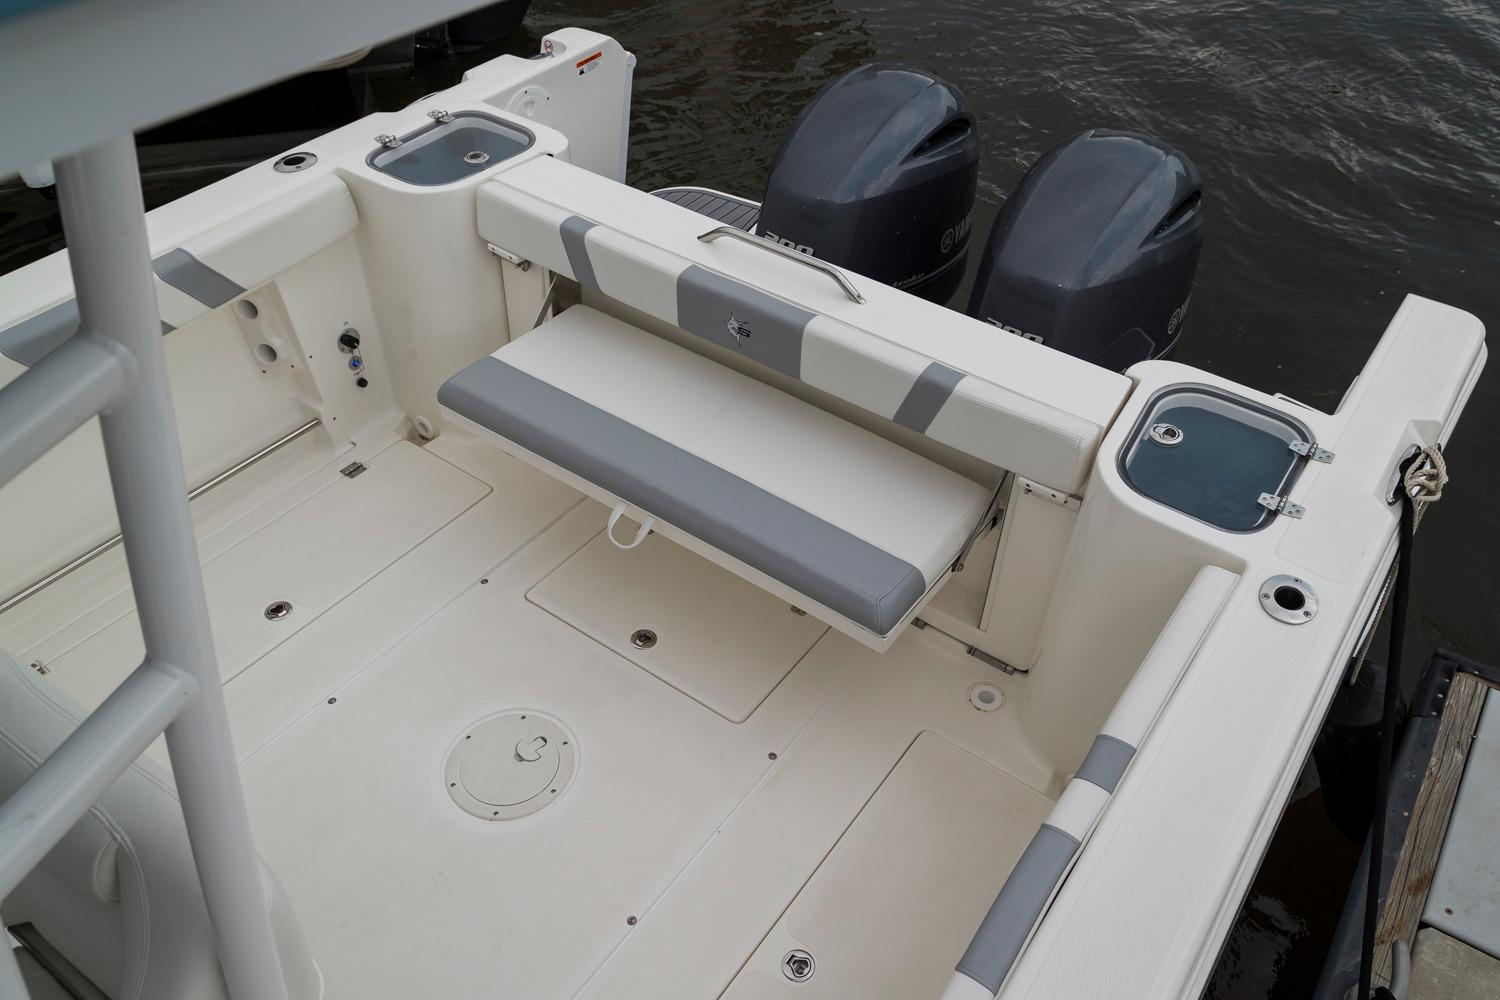 2018 Striper 270 Center Console in Madera, California